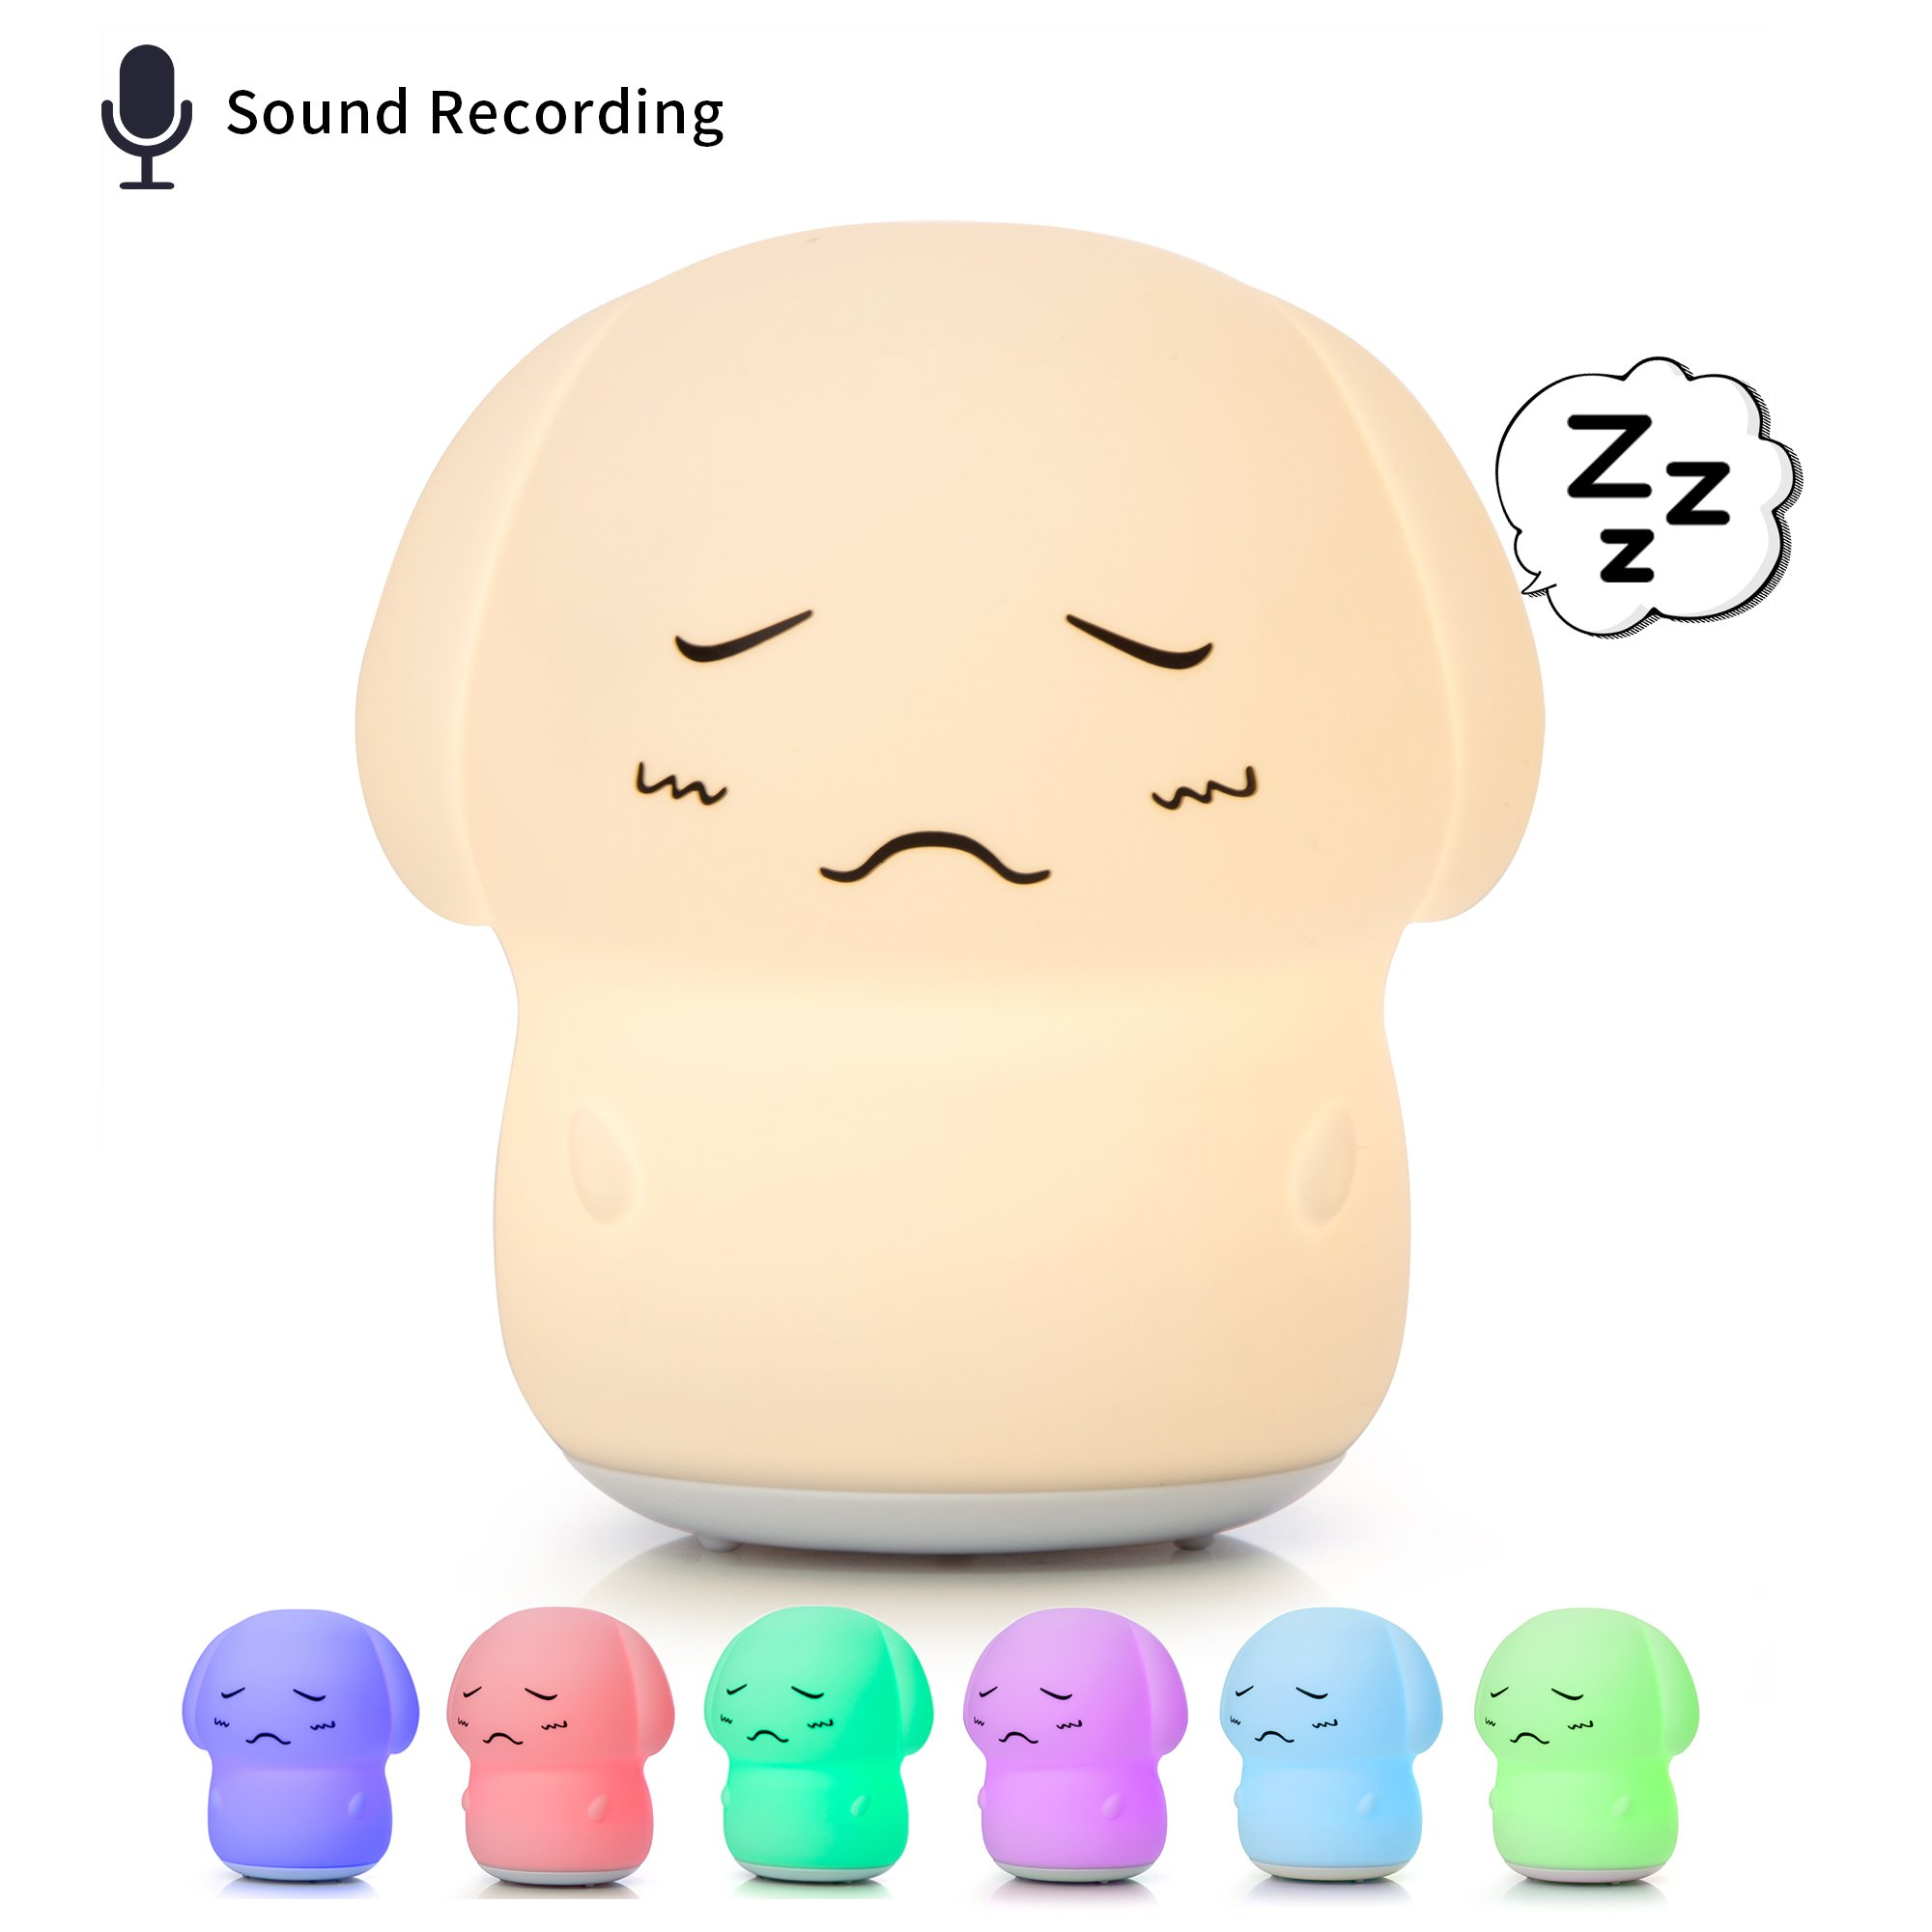 [NEW] Kids Night Lights, Nursery Lamp with Voice Recorder, Puppy Dog Night Light for Children, Baby Girl Gifts, Boys Night Light, Toys for 2 Year Old Boy/Girl.